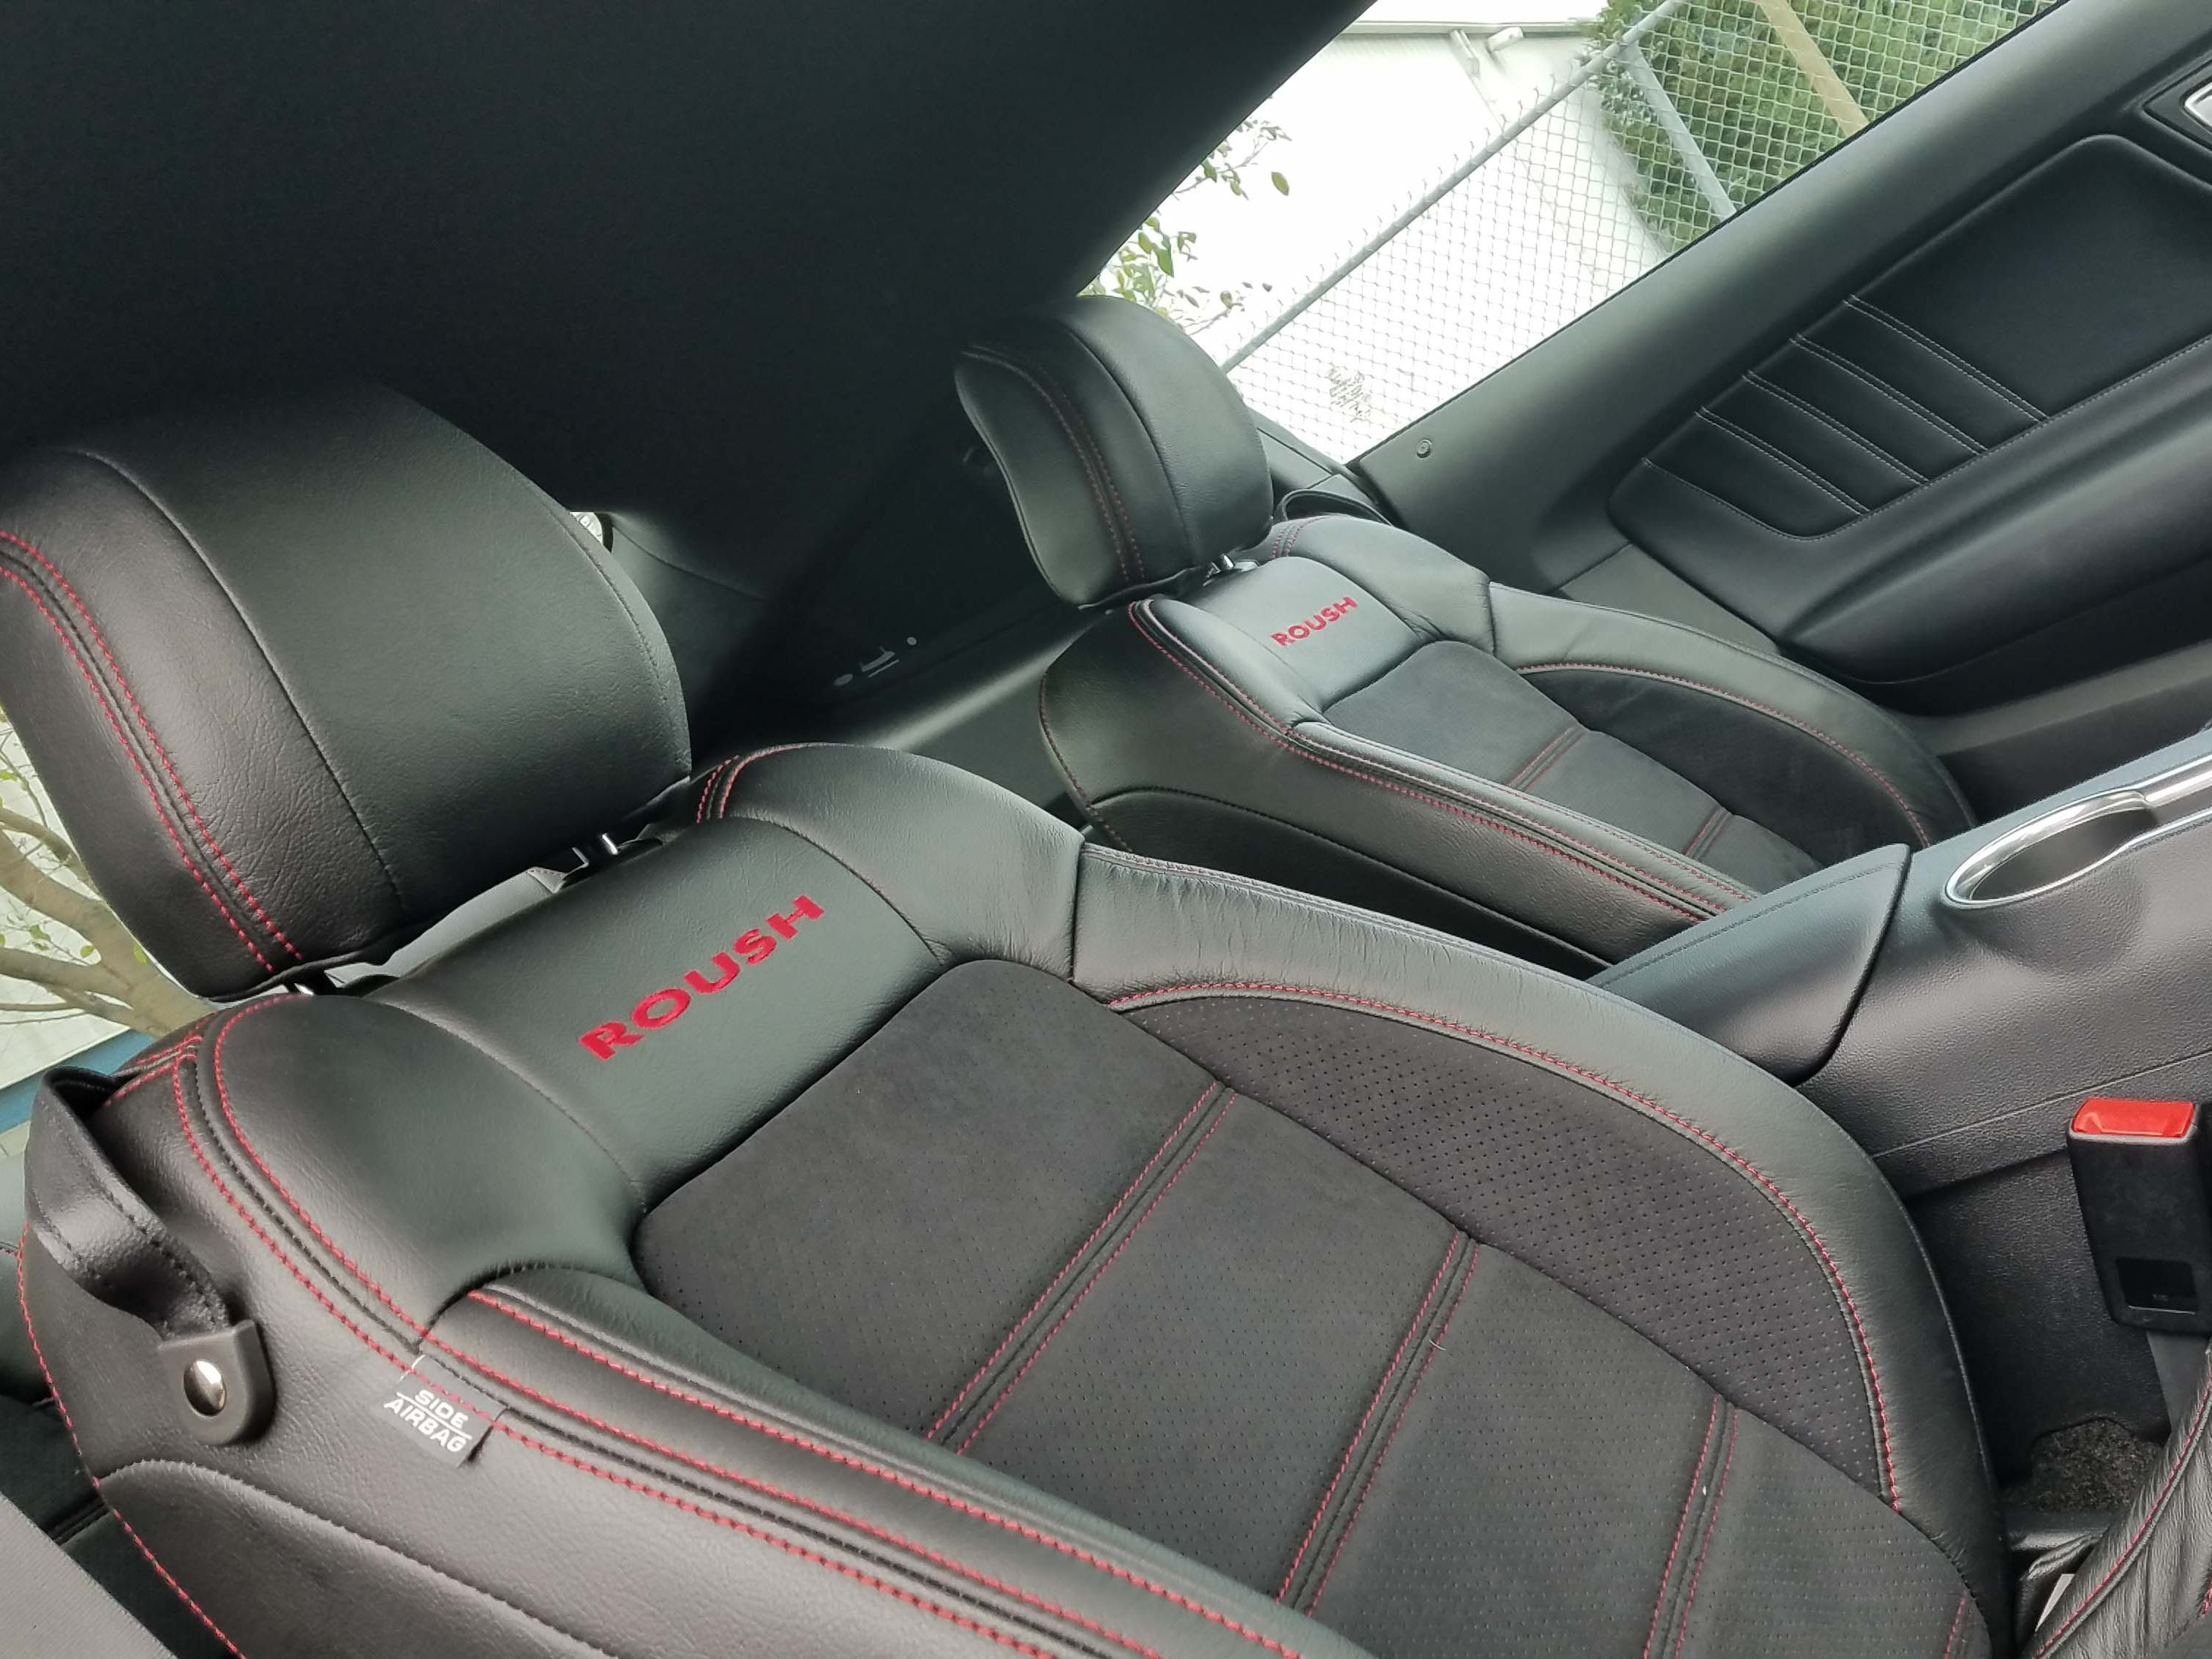 The 2018 Roush Jackhammer Mustang is available with Roush-badge seating.